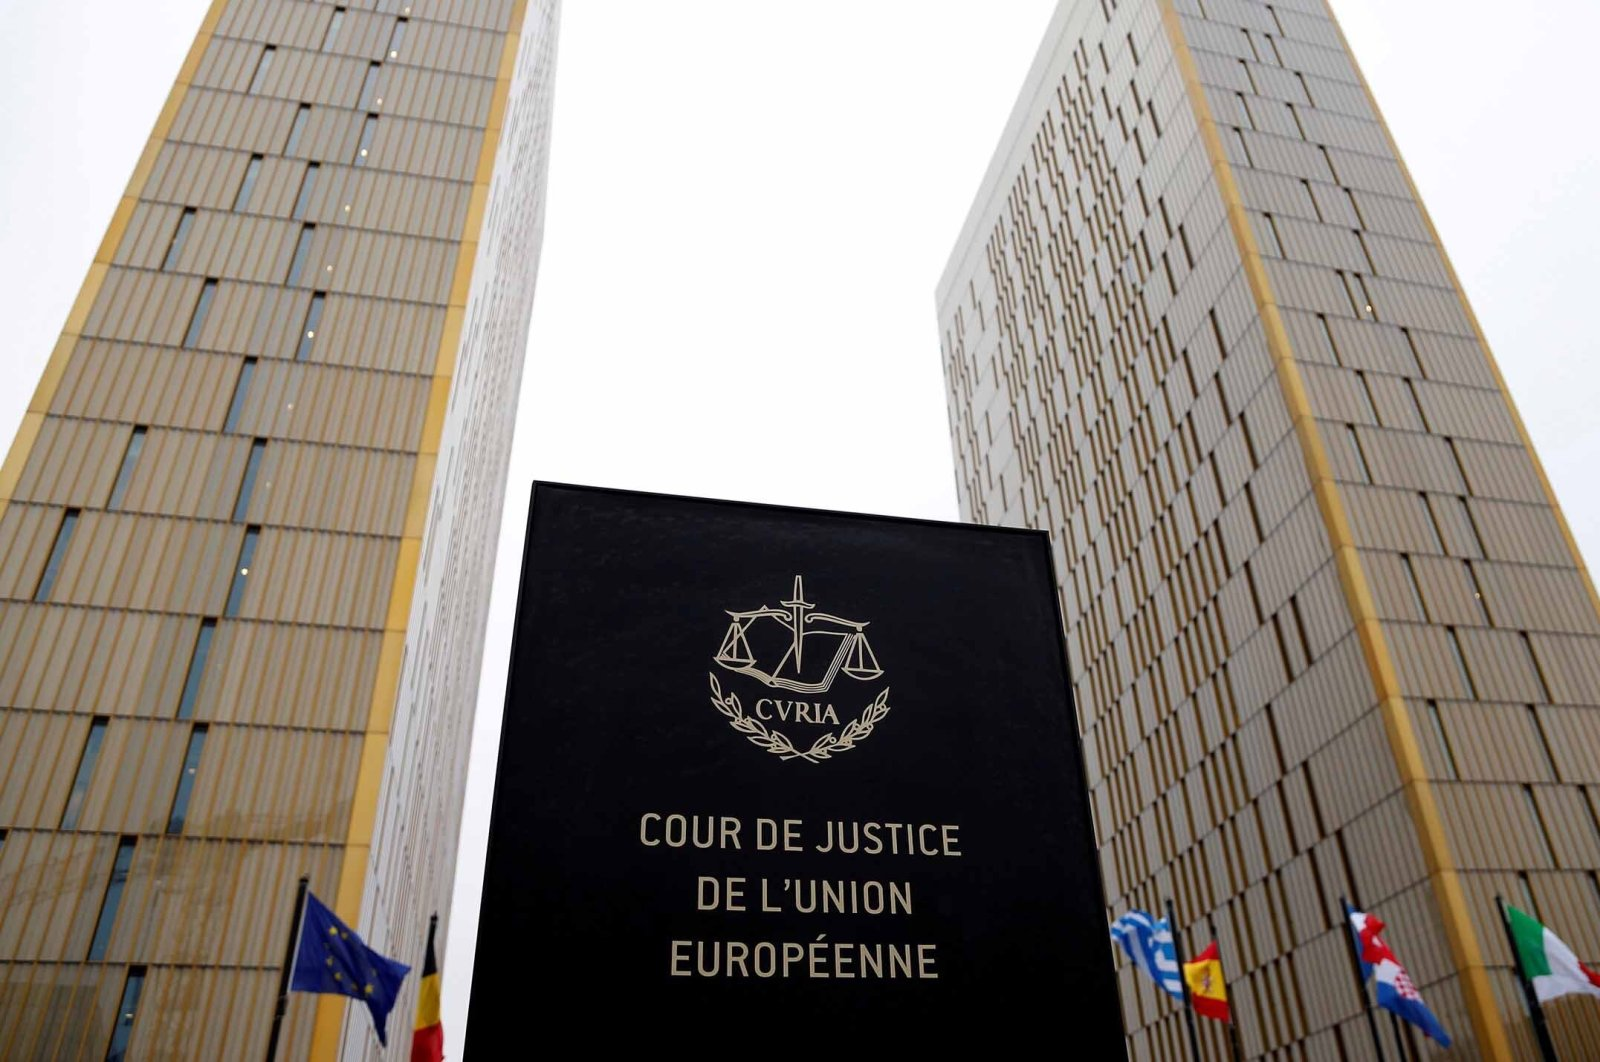 The towers of the Court of Justice of the European Union are seen in Luxembourg, January 26, 2017. (Reuters File Photo)